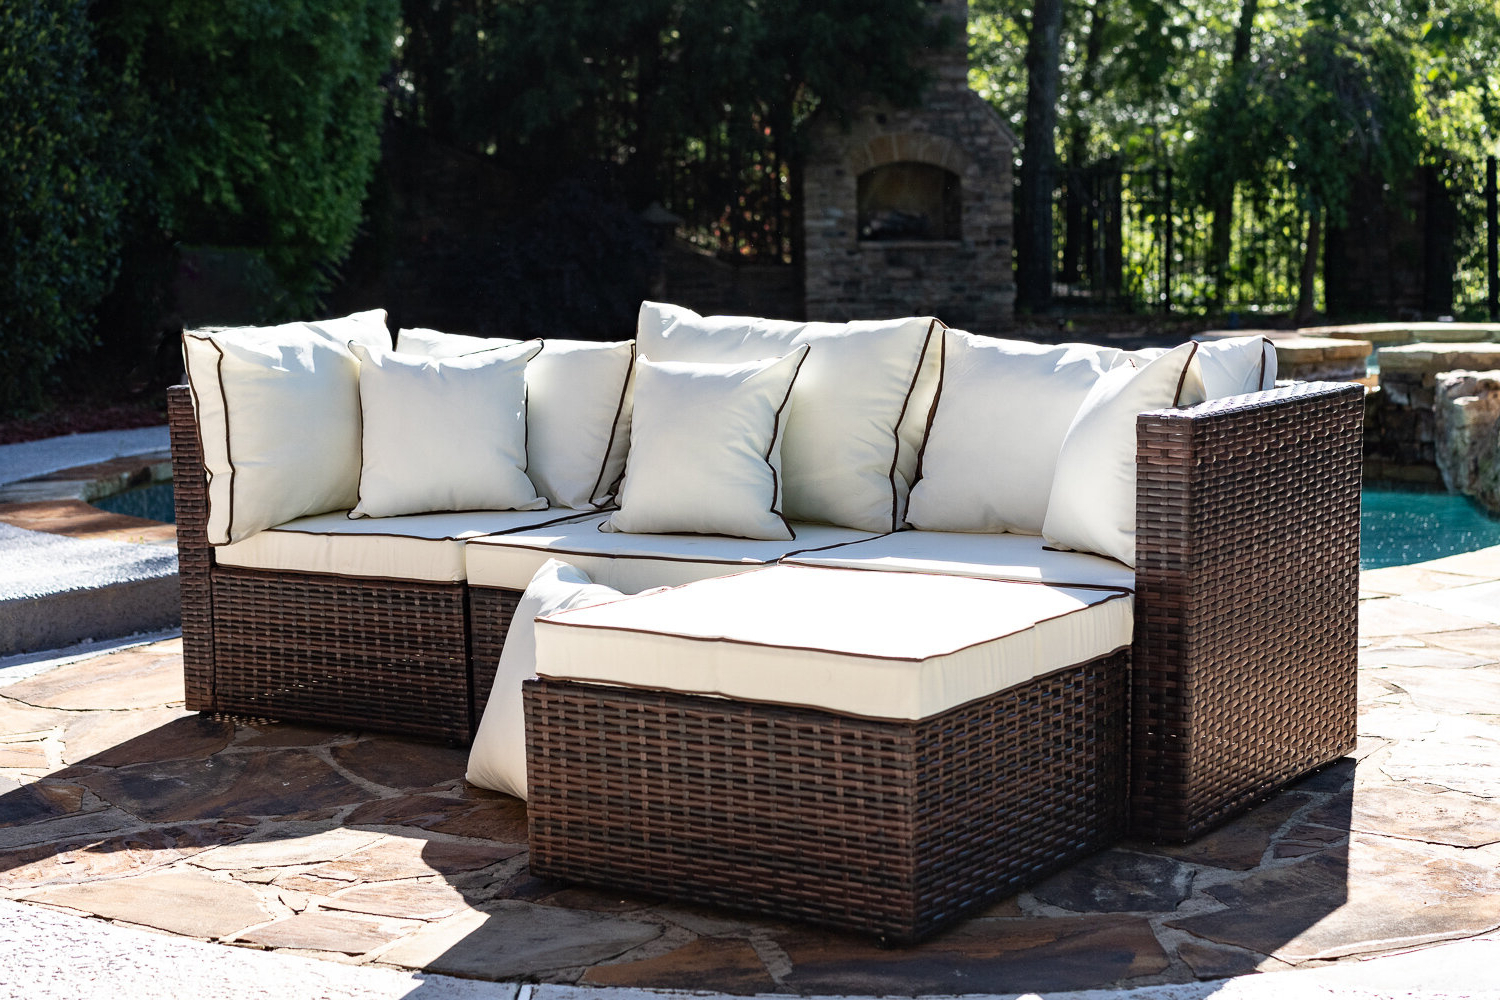 2019 Purington Circular Patio Sectionals With Cushions In Burruss Patio Sectional With Cushions (View 2 of 20)